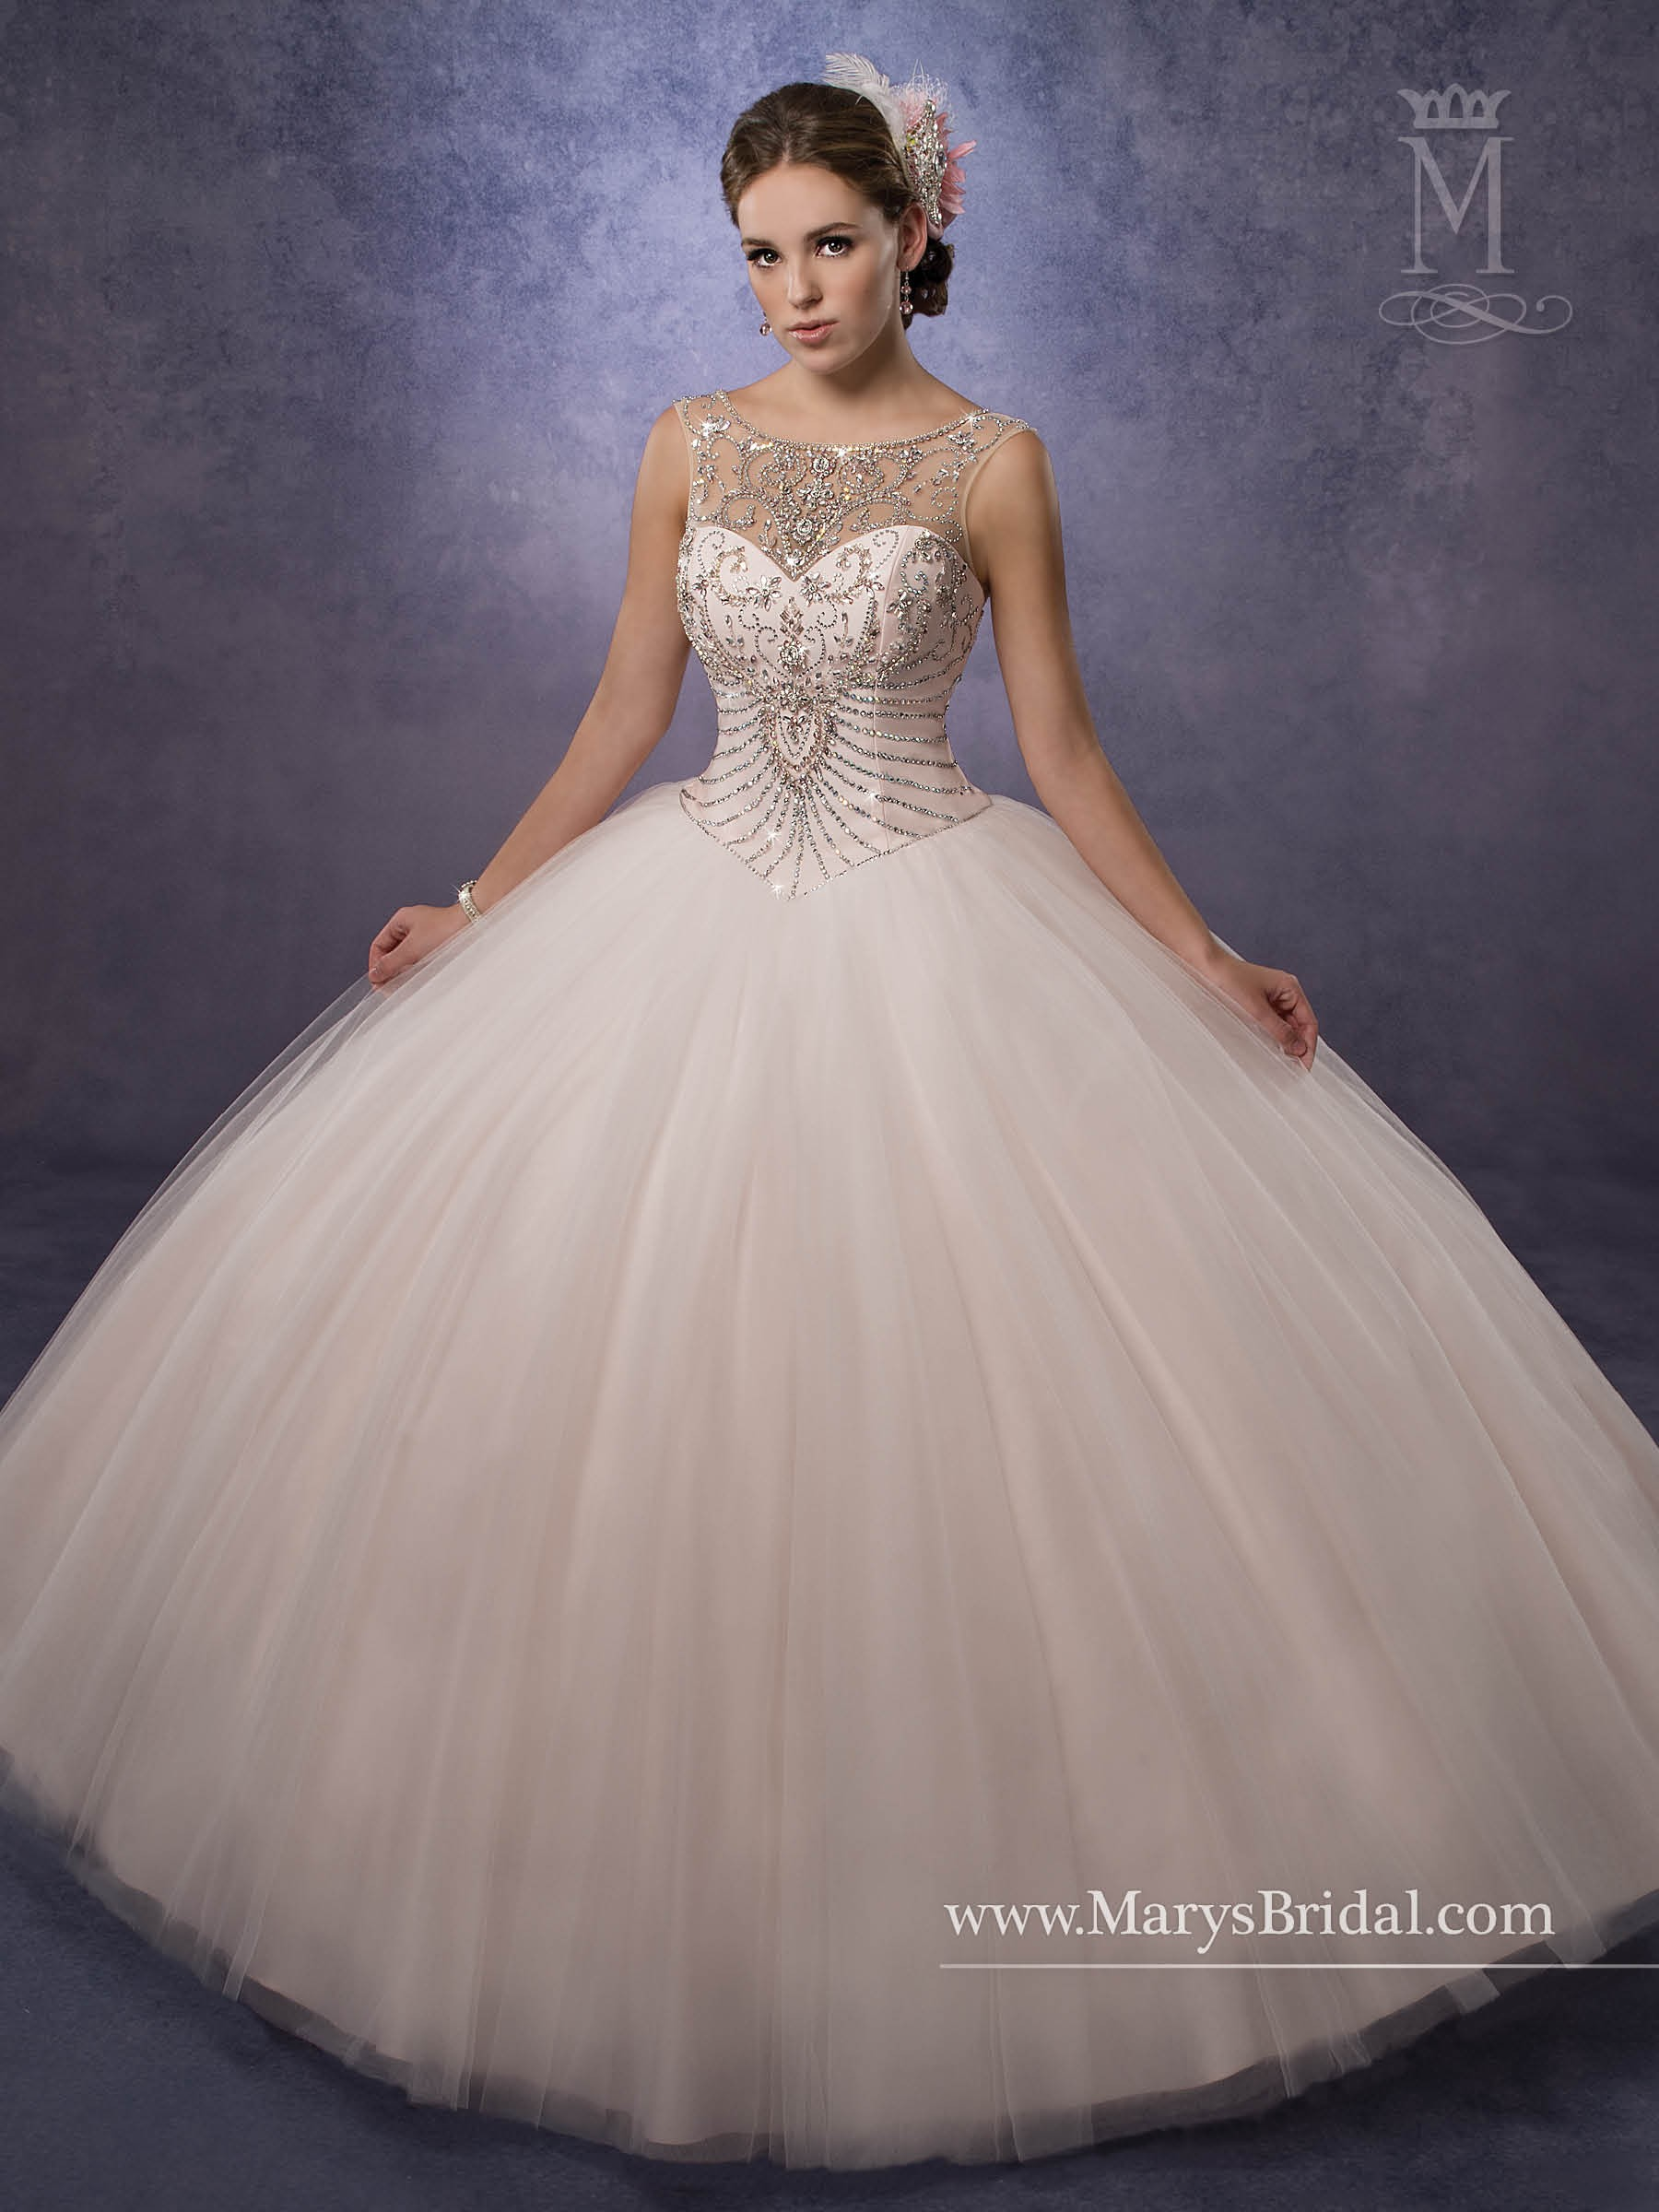 Marys Bridal 4769 Quinceanera Dress Madamebridal Com